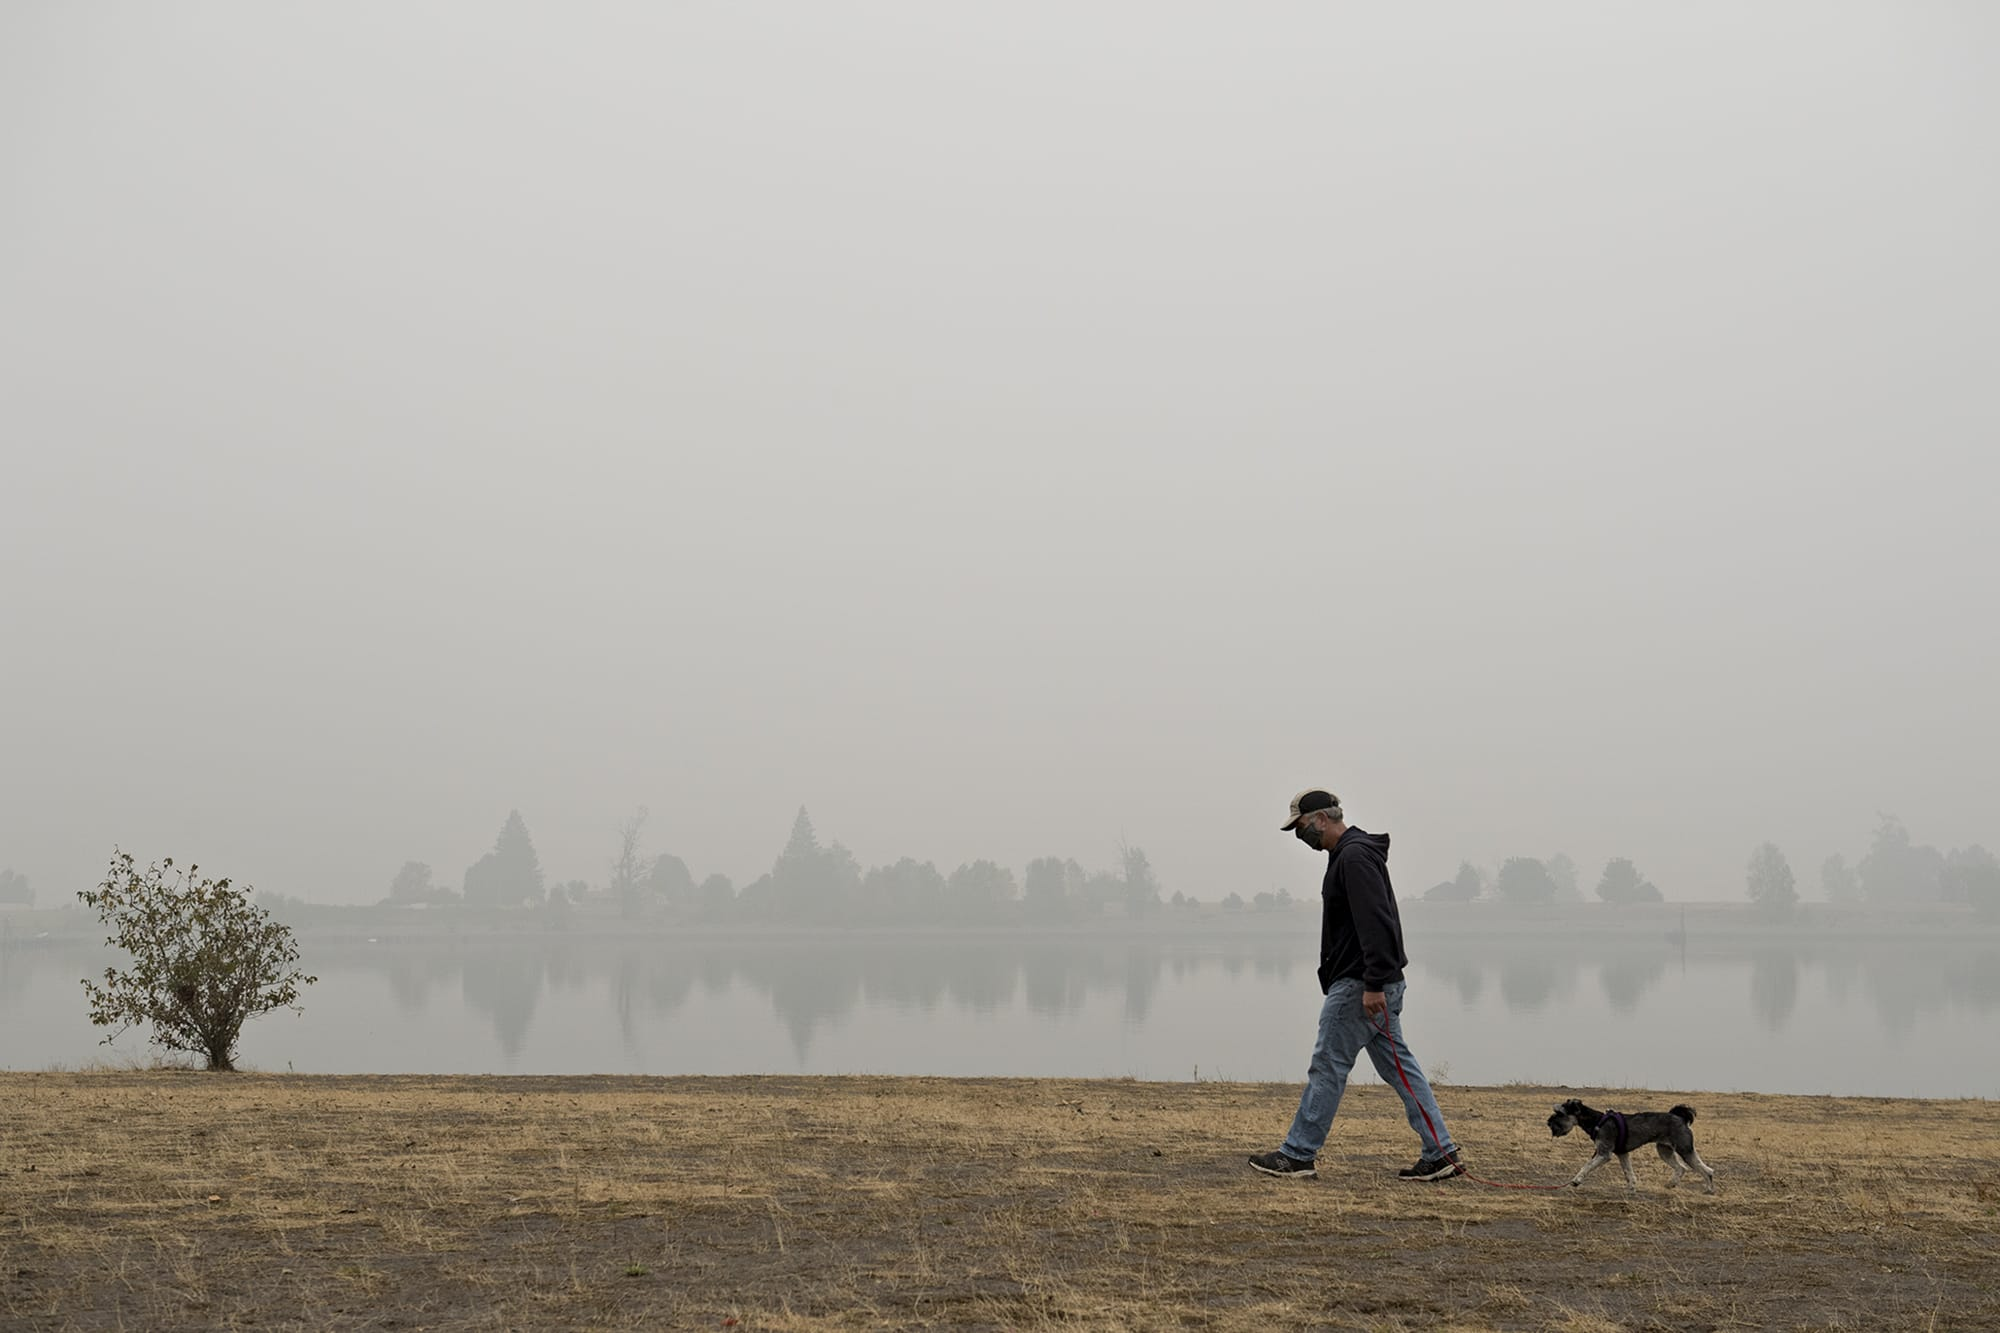 """Frank Schmit of Vancouver wears a mask while taking his dog, Ripley, a mini schnauzer, for a stroll as thick wildfire smoke obscures the visibility of trees across the water at Frenchman's Bar Regional Park on Monday morning, Sept. 14, 2020. Schmit said the fires and the smoke are just the latest in a list of unusual events that have happened in 2020. """"It's been a hell of a year,"""" he said. (Amanda Cowan/The Columbian)"""